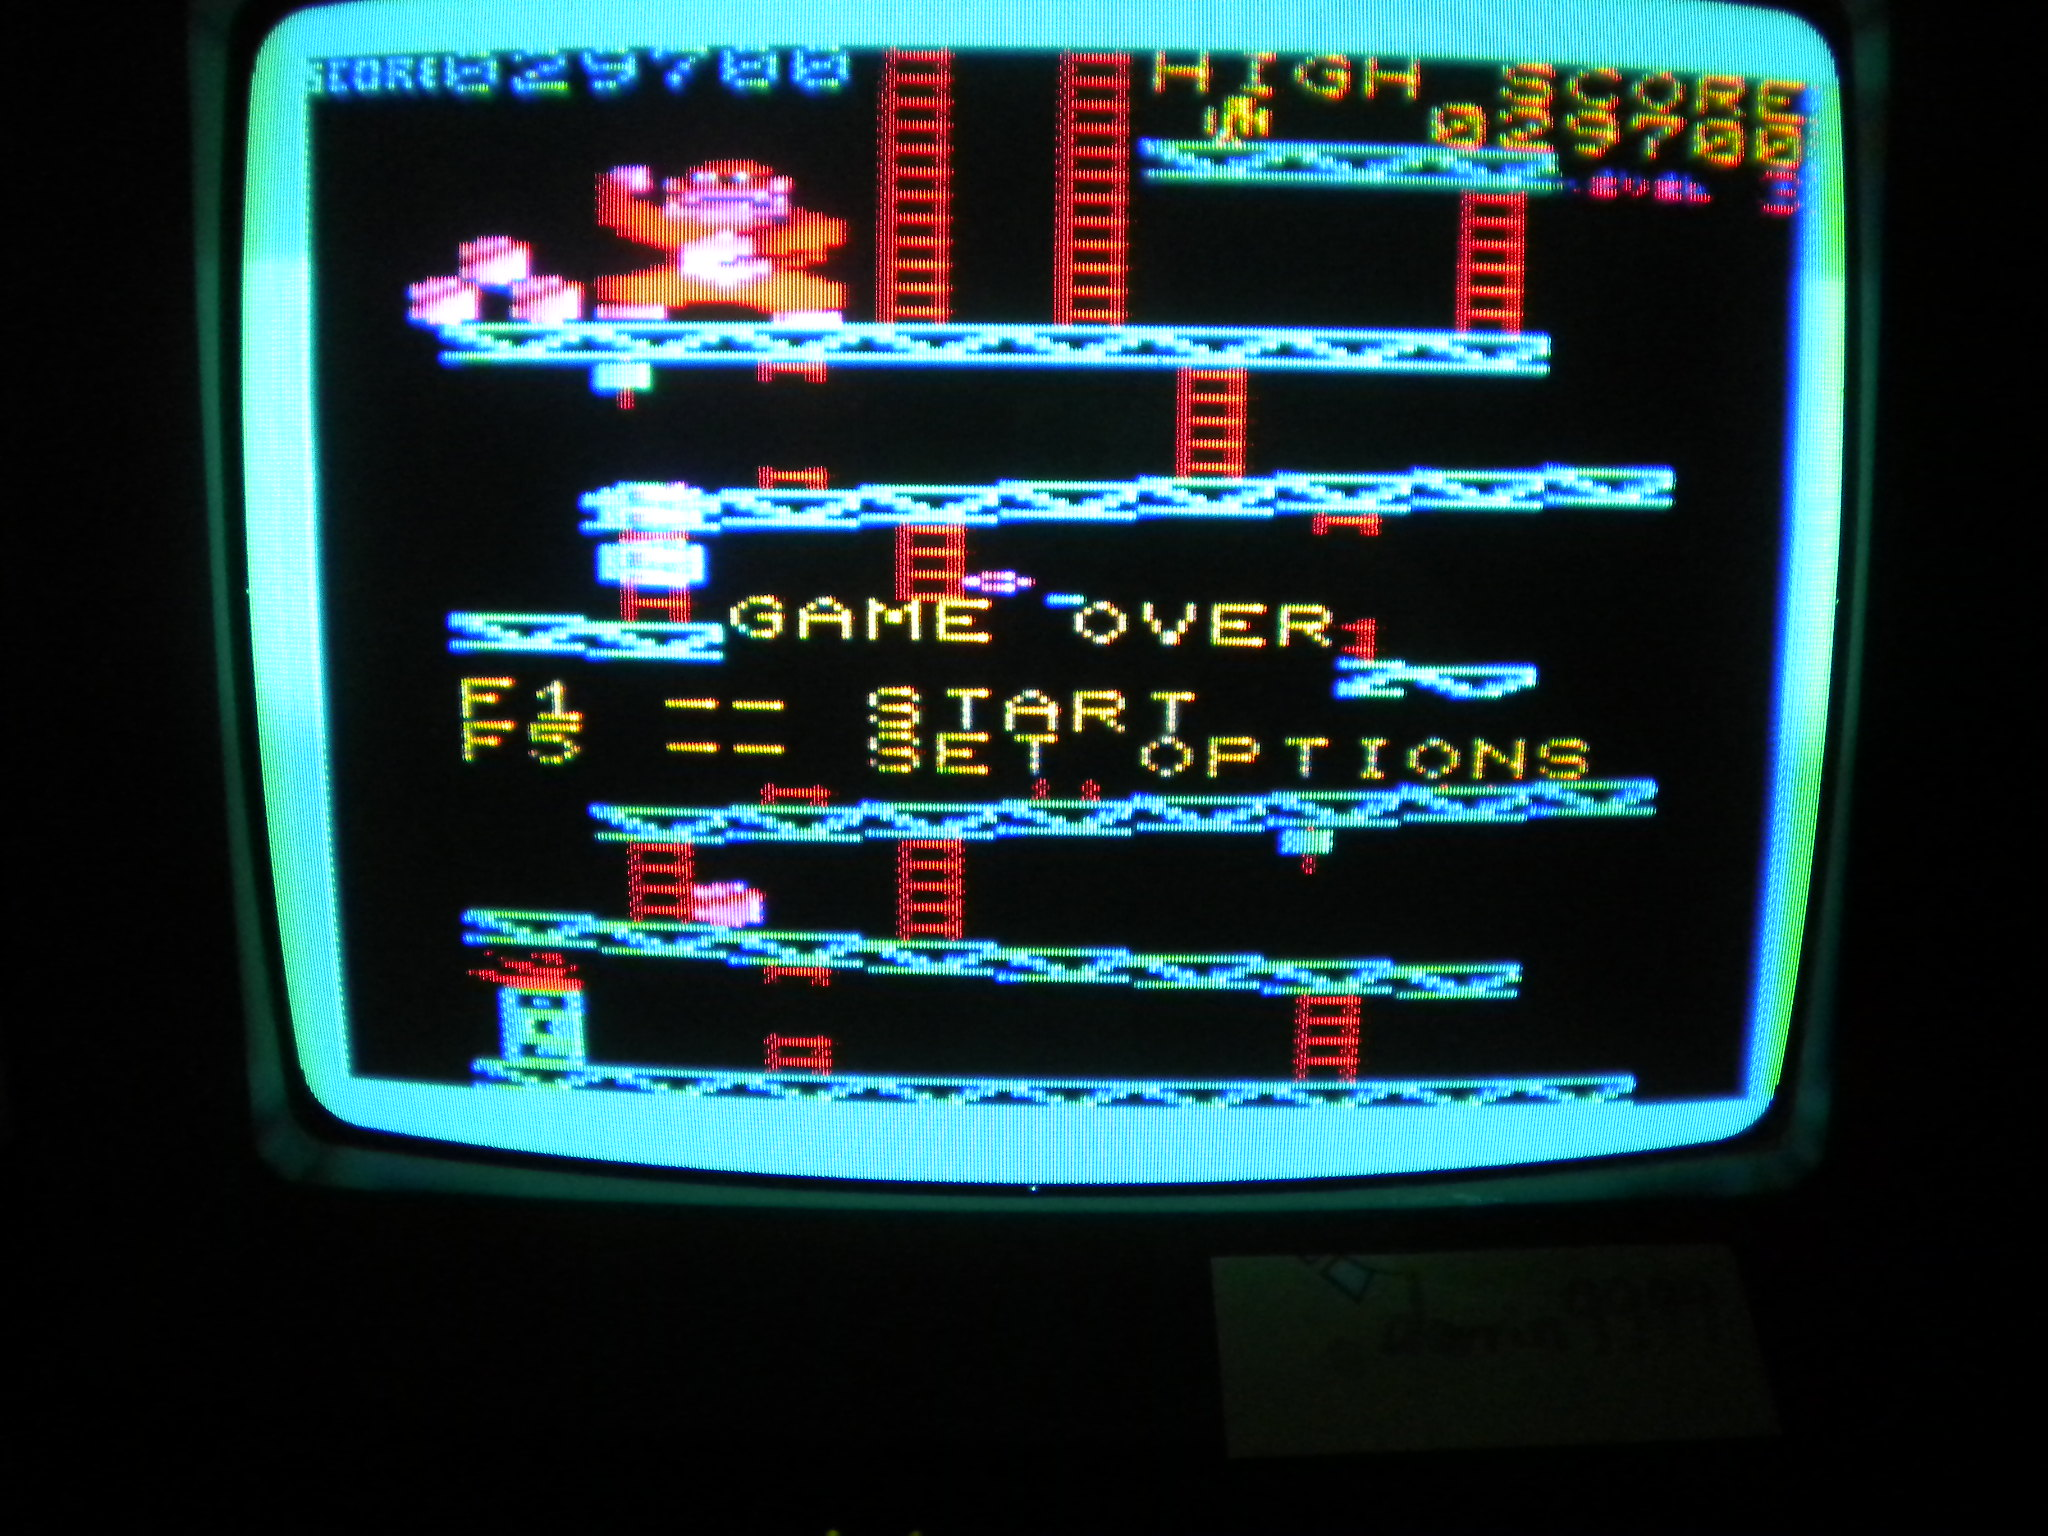 Donkey Kong 29,700 points